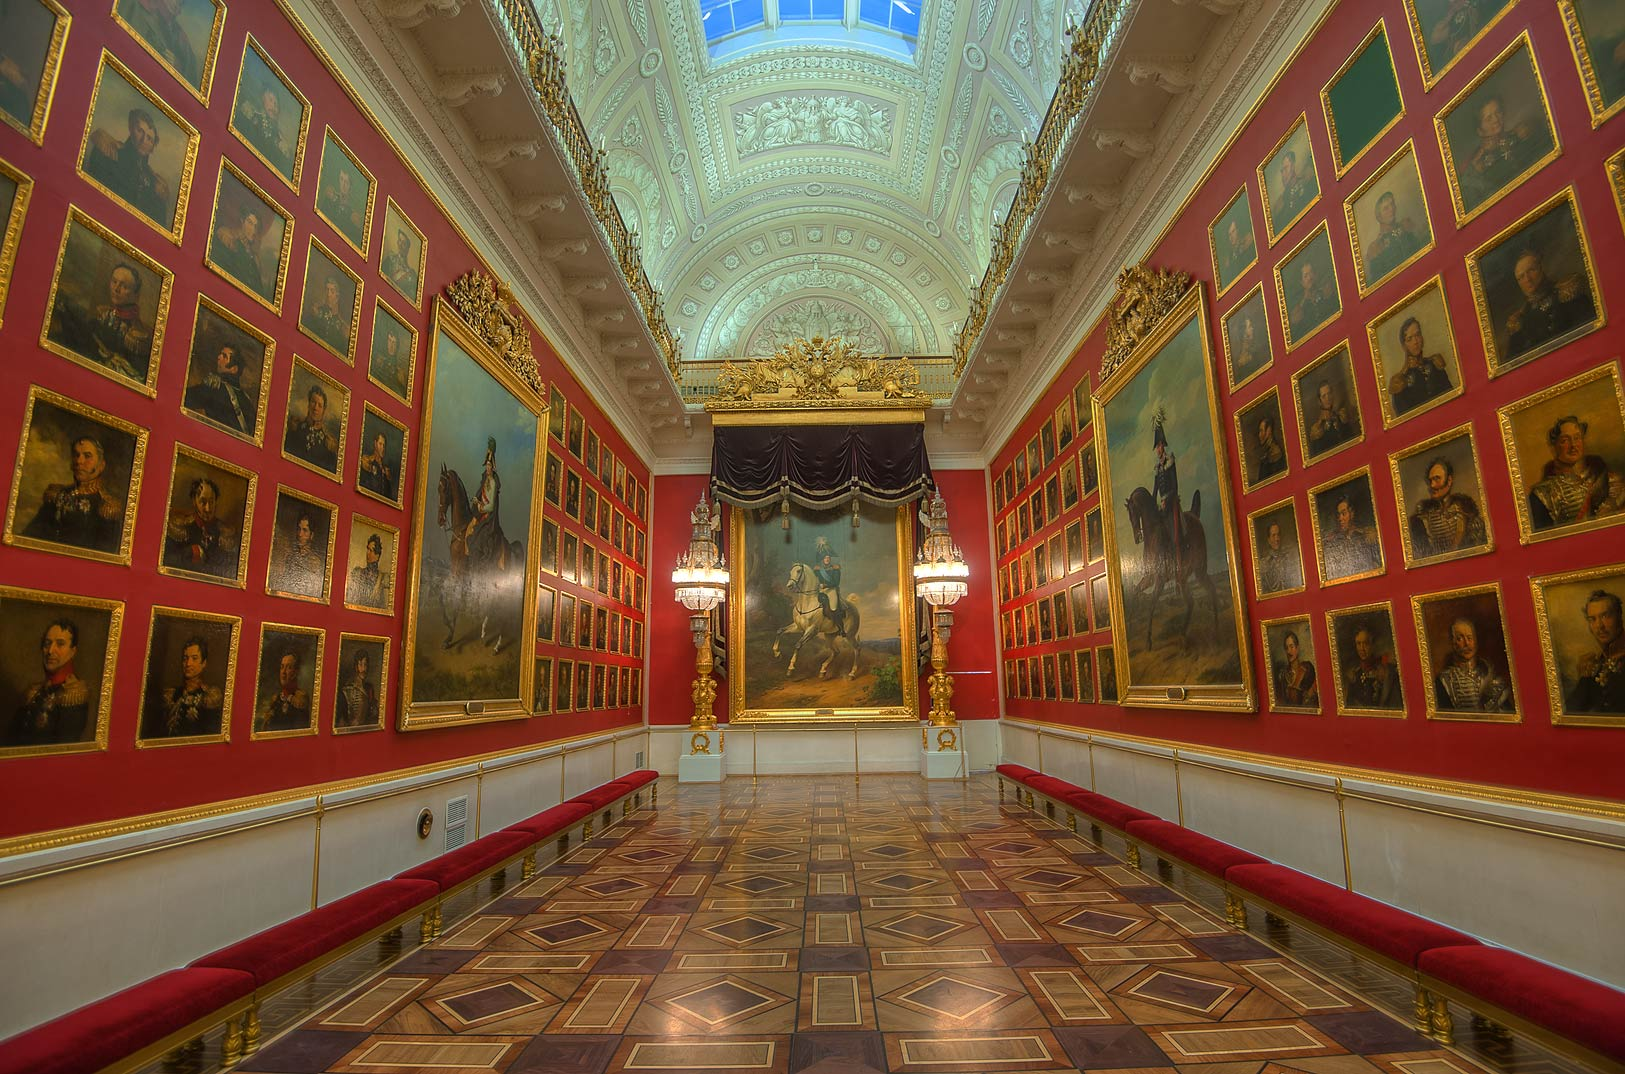 Gallery of the Patriotic War of 1812 in Hermitage Museum. St.Petersburg, Russia